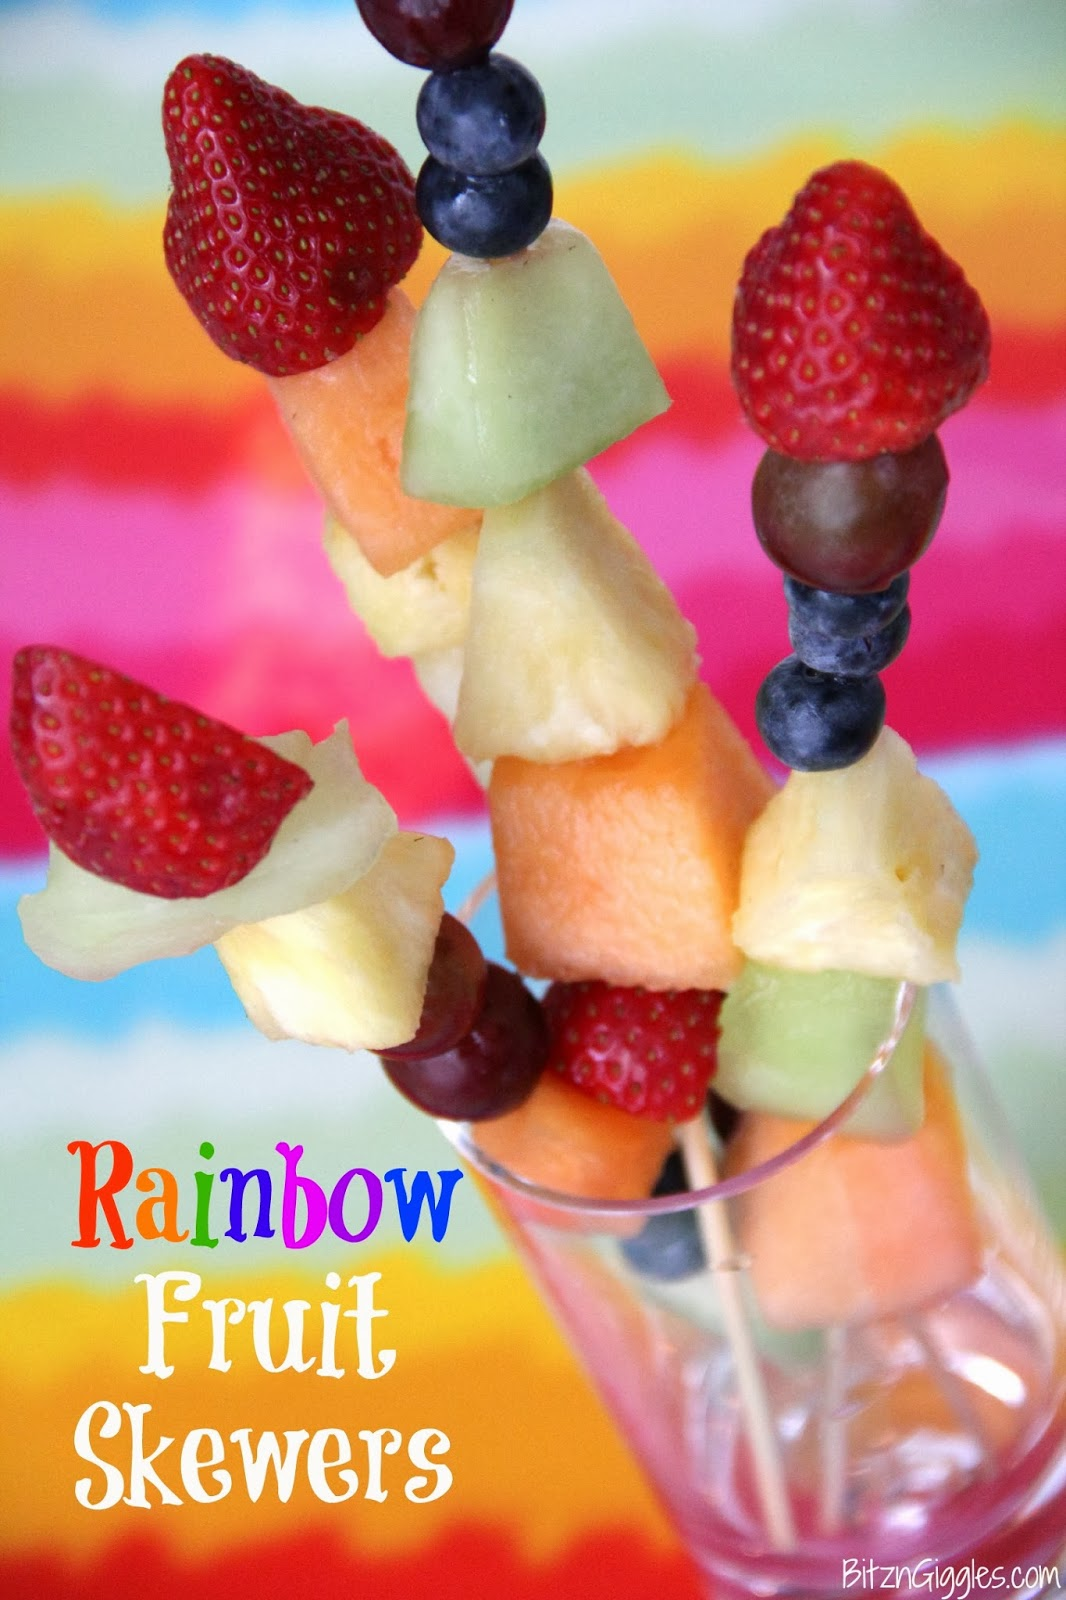 https://www.bitzngiggles.com/2014/02/rainbow-fruit-skewers.html